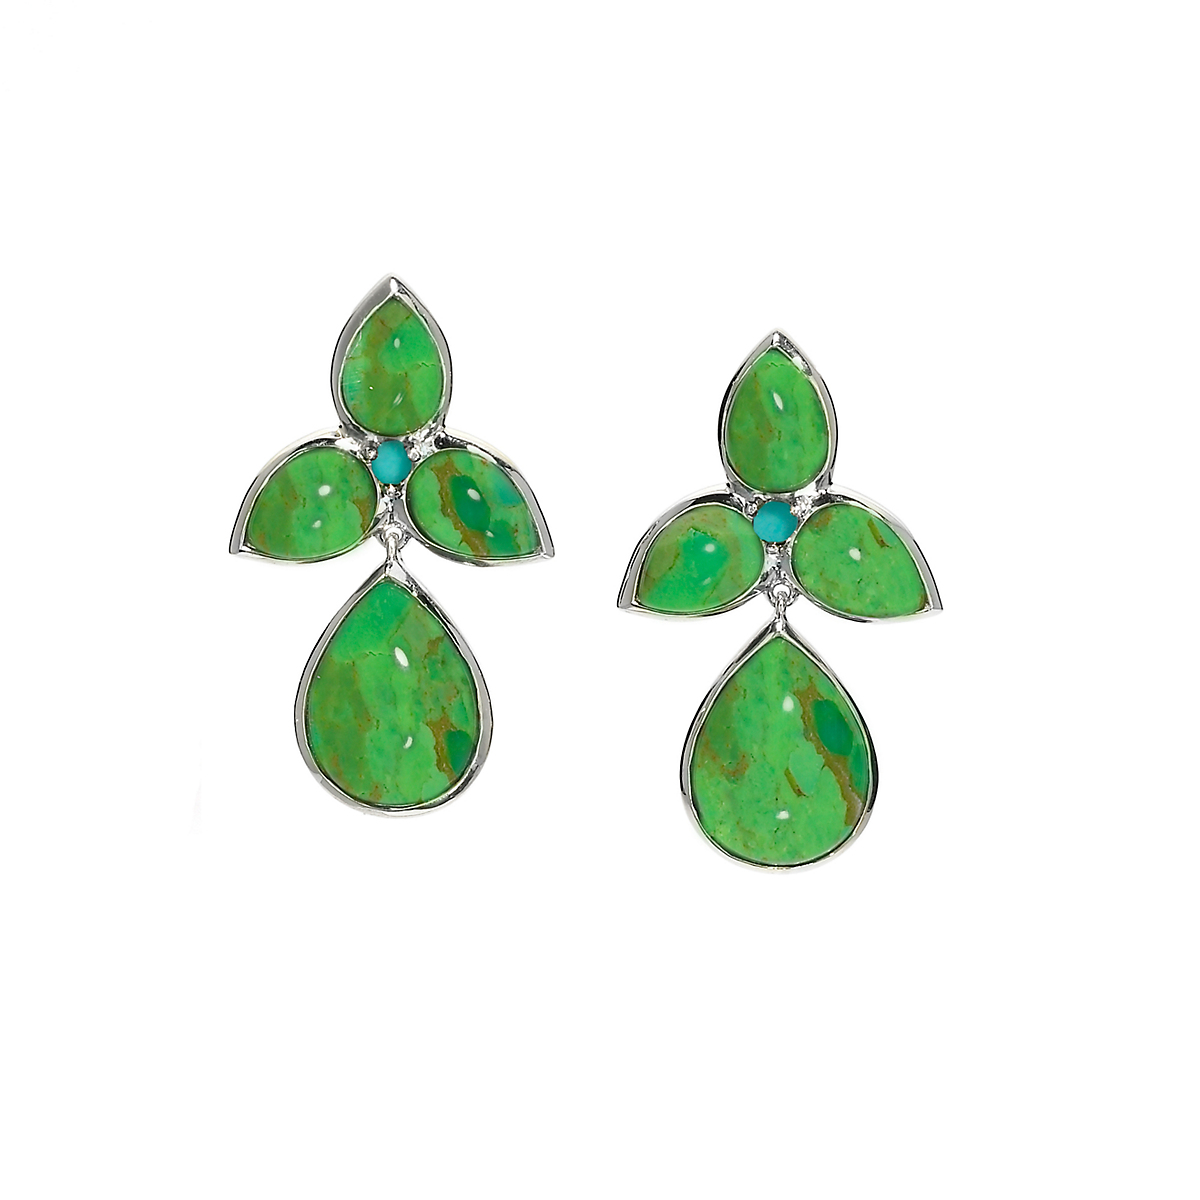 Elizabeth Showers Green & Blue Turquoise Mariposa Teardrop Earrings